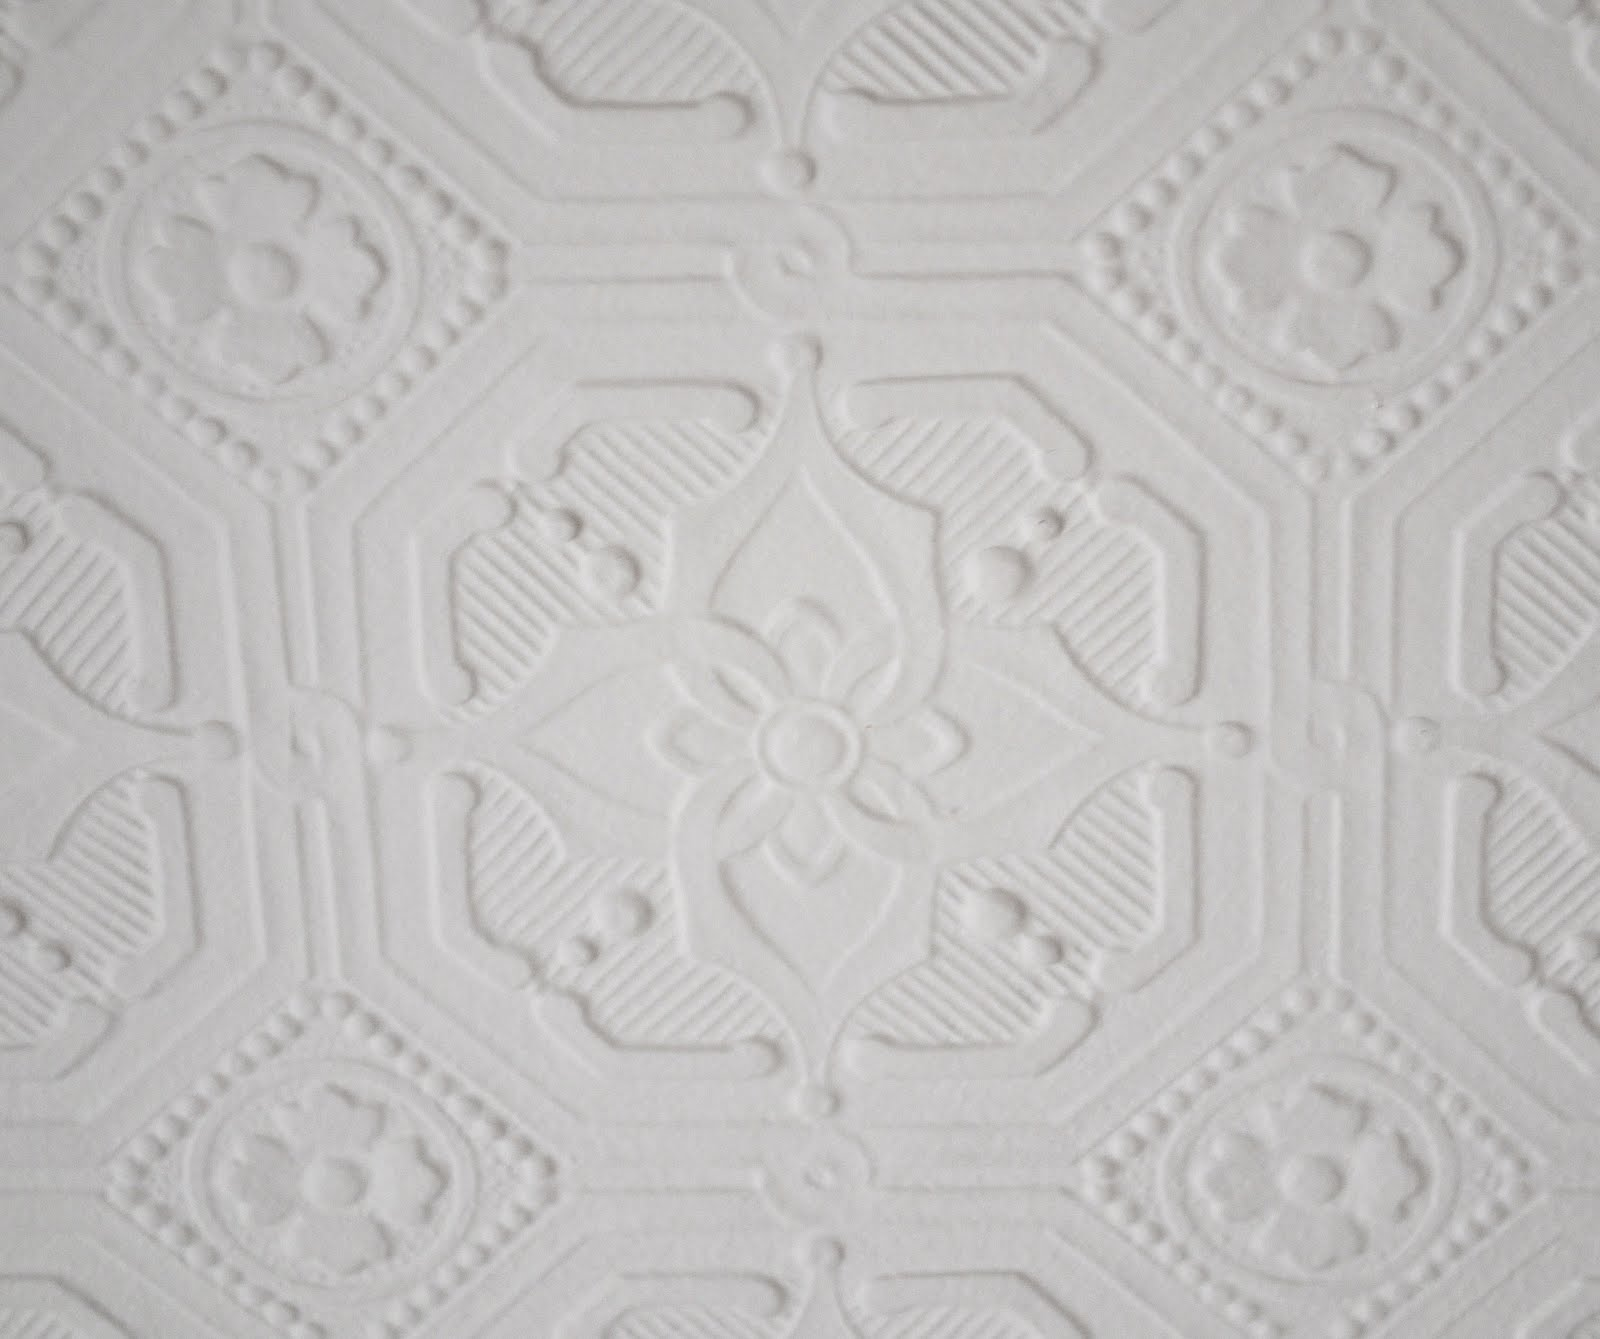 EMBOSSED CEILING WALLPAPER u00ab Ceiling Systems